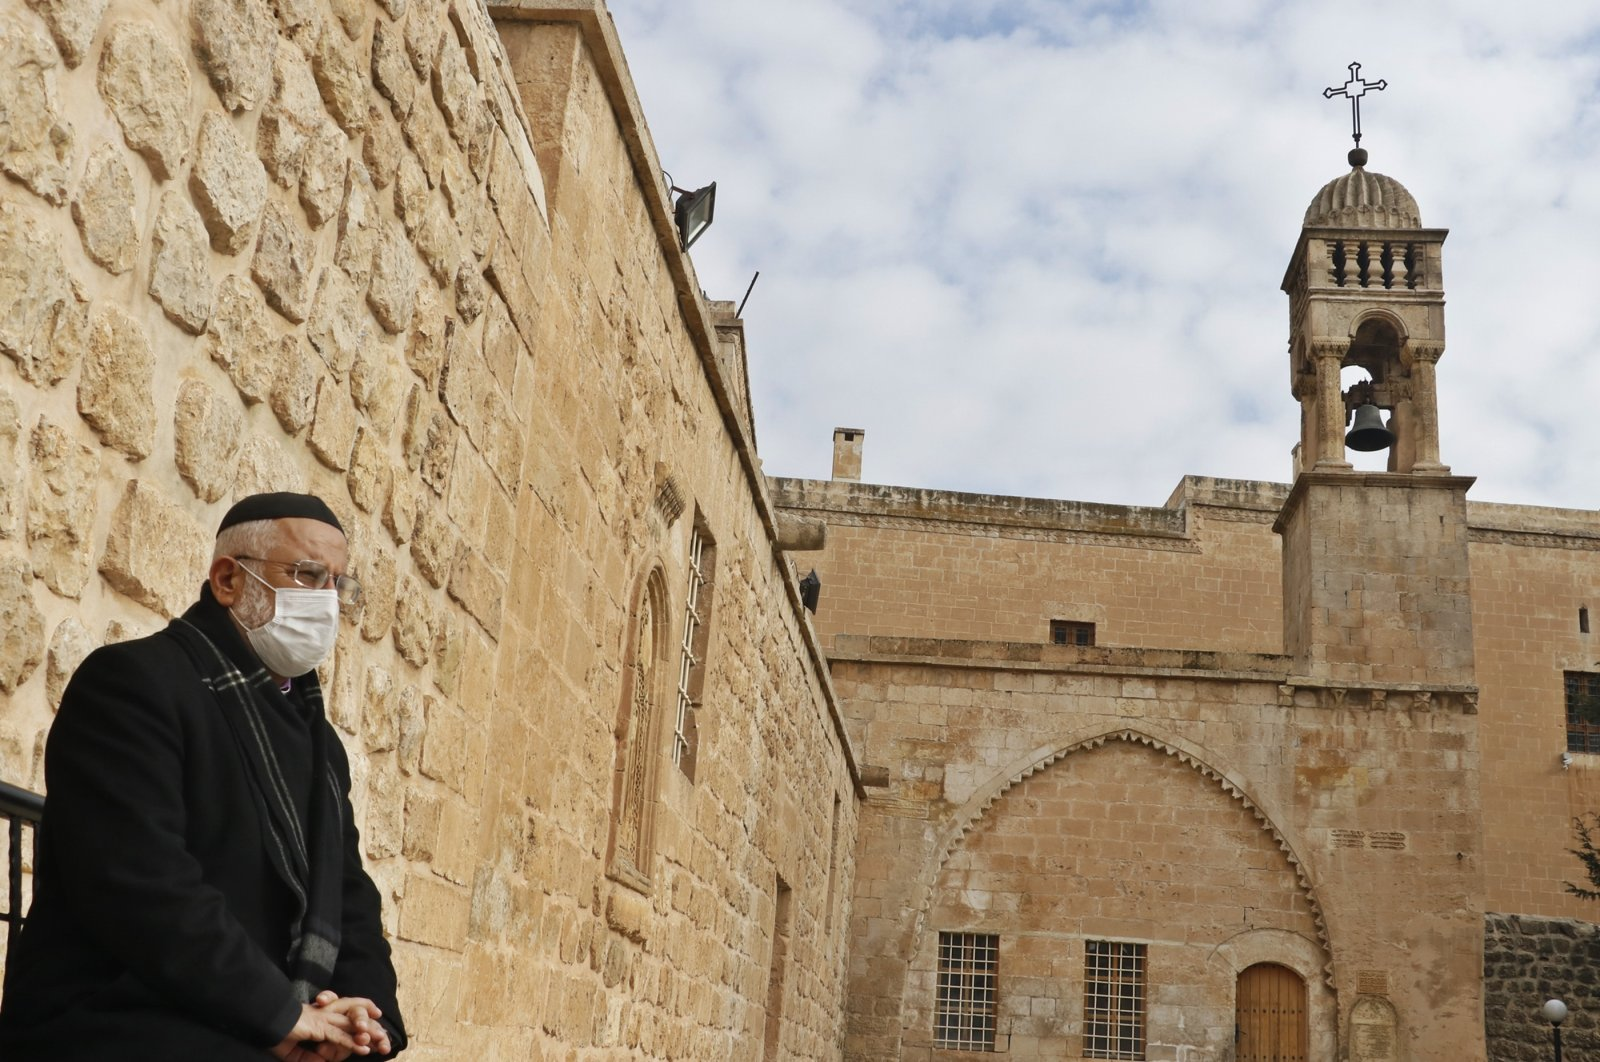 Priest Gabriel Akyüz stands next to Kırklar Church where a Christmas service will be held with only 50 people, in Mardin, southeastern Turkey, Dec. 23, 2020. (DHA PHOTO)